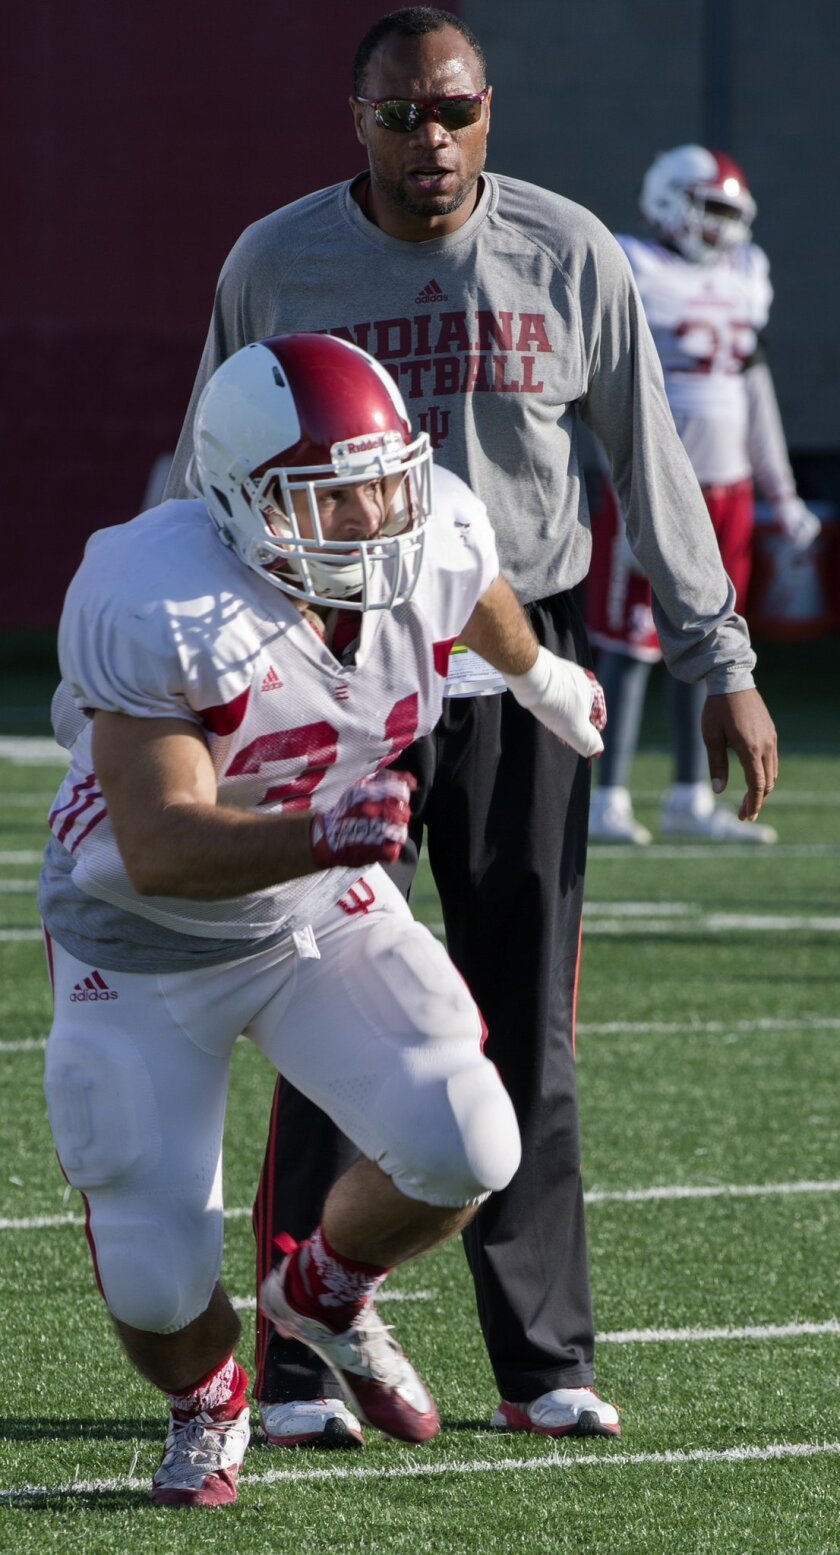 James Halford, foreground, runs as co-defensive coordinator William Inge watches Halford during an NCAA college football practice Wednesday, Nov. 4, 2015, in Bloomington, Ind. Halford cherishes the football apprenticeship Indiana gave him as a scout team linebacker and fullback, and he will always